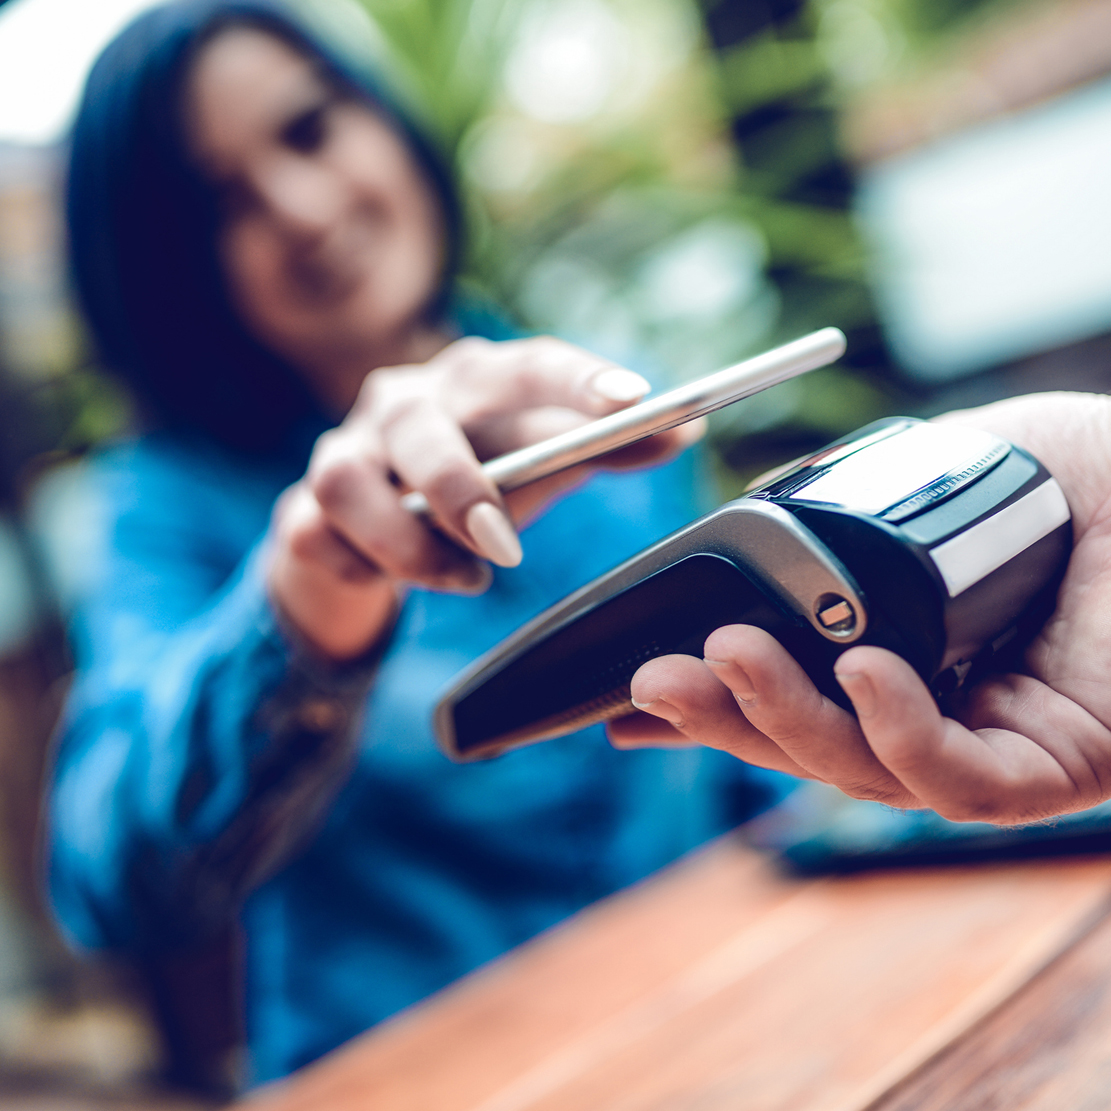 Make payments quickly and securely with Android Pay and Samsung Pay